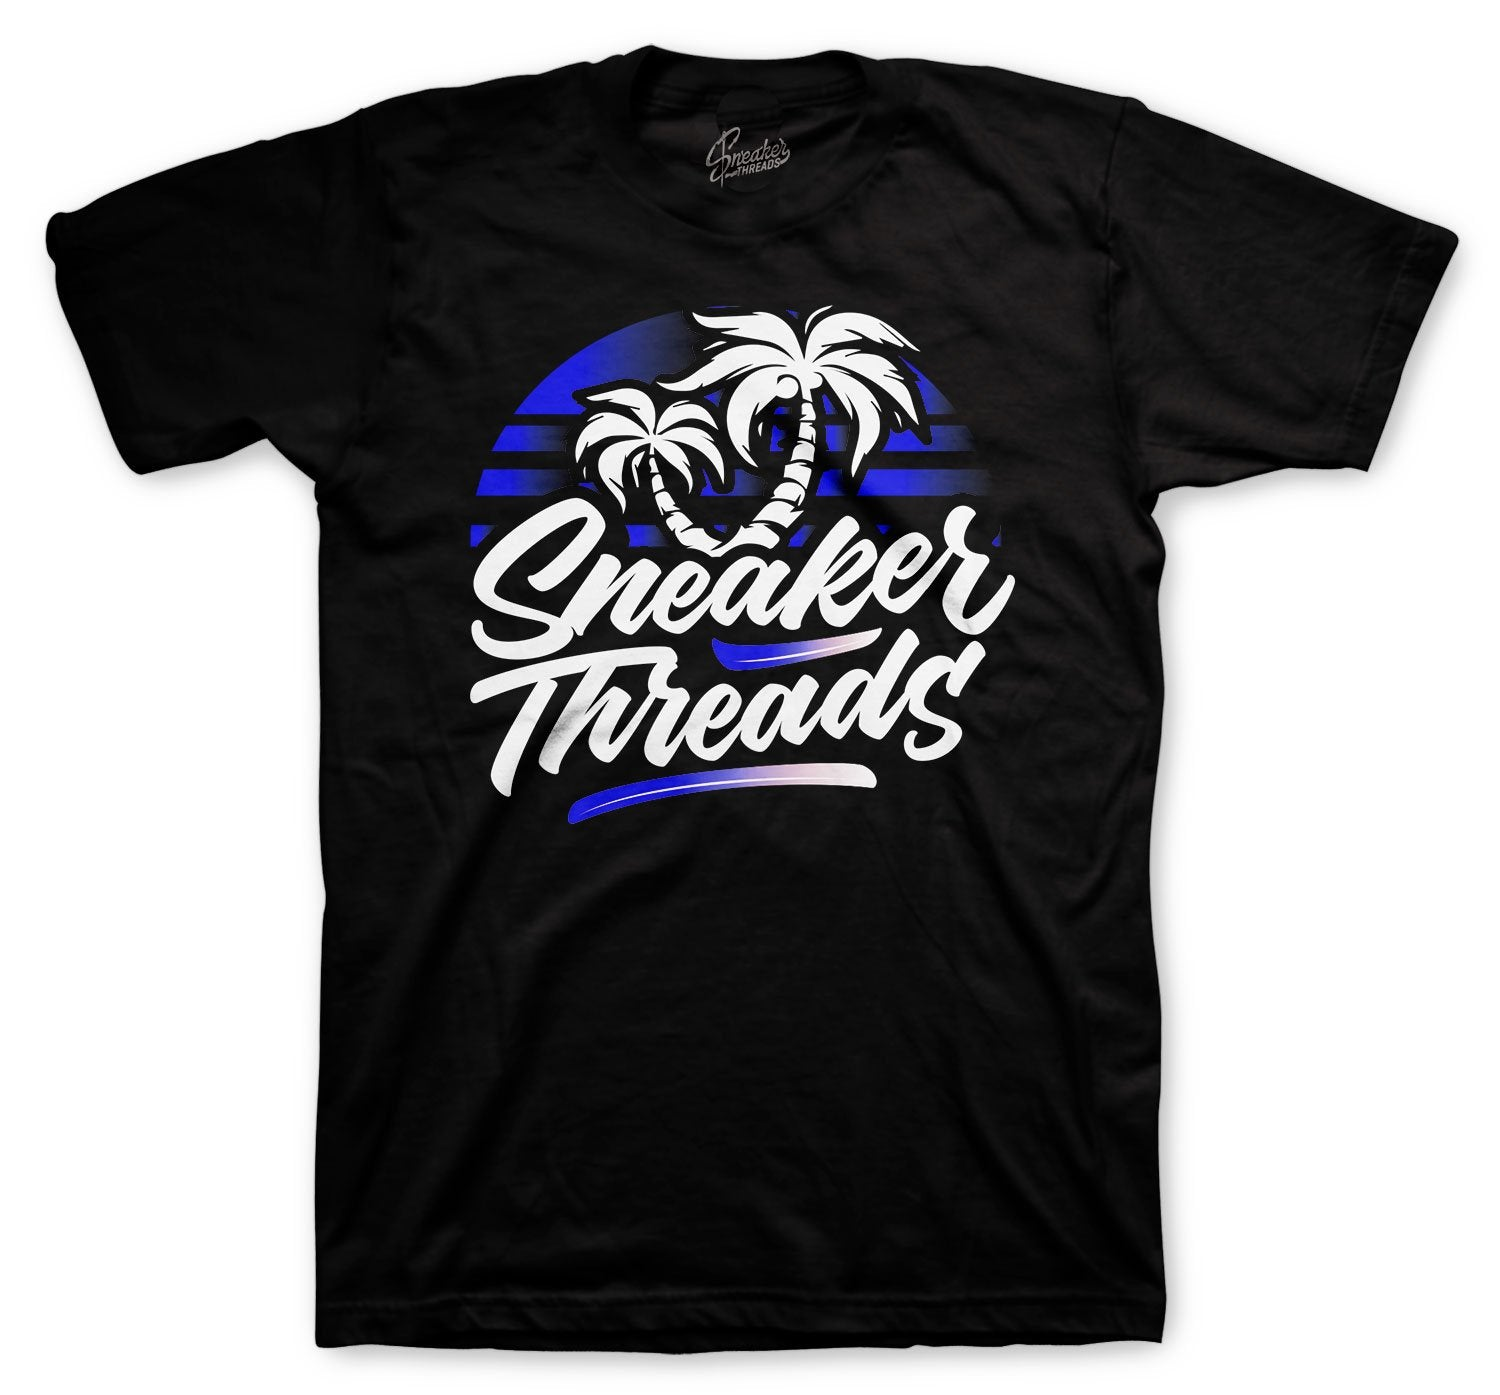 t shirt collection designed to match the sneaker collection designed to match the sneaker air max hyper royal collection